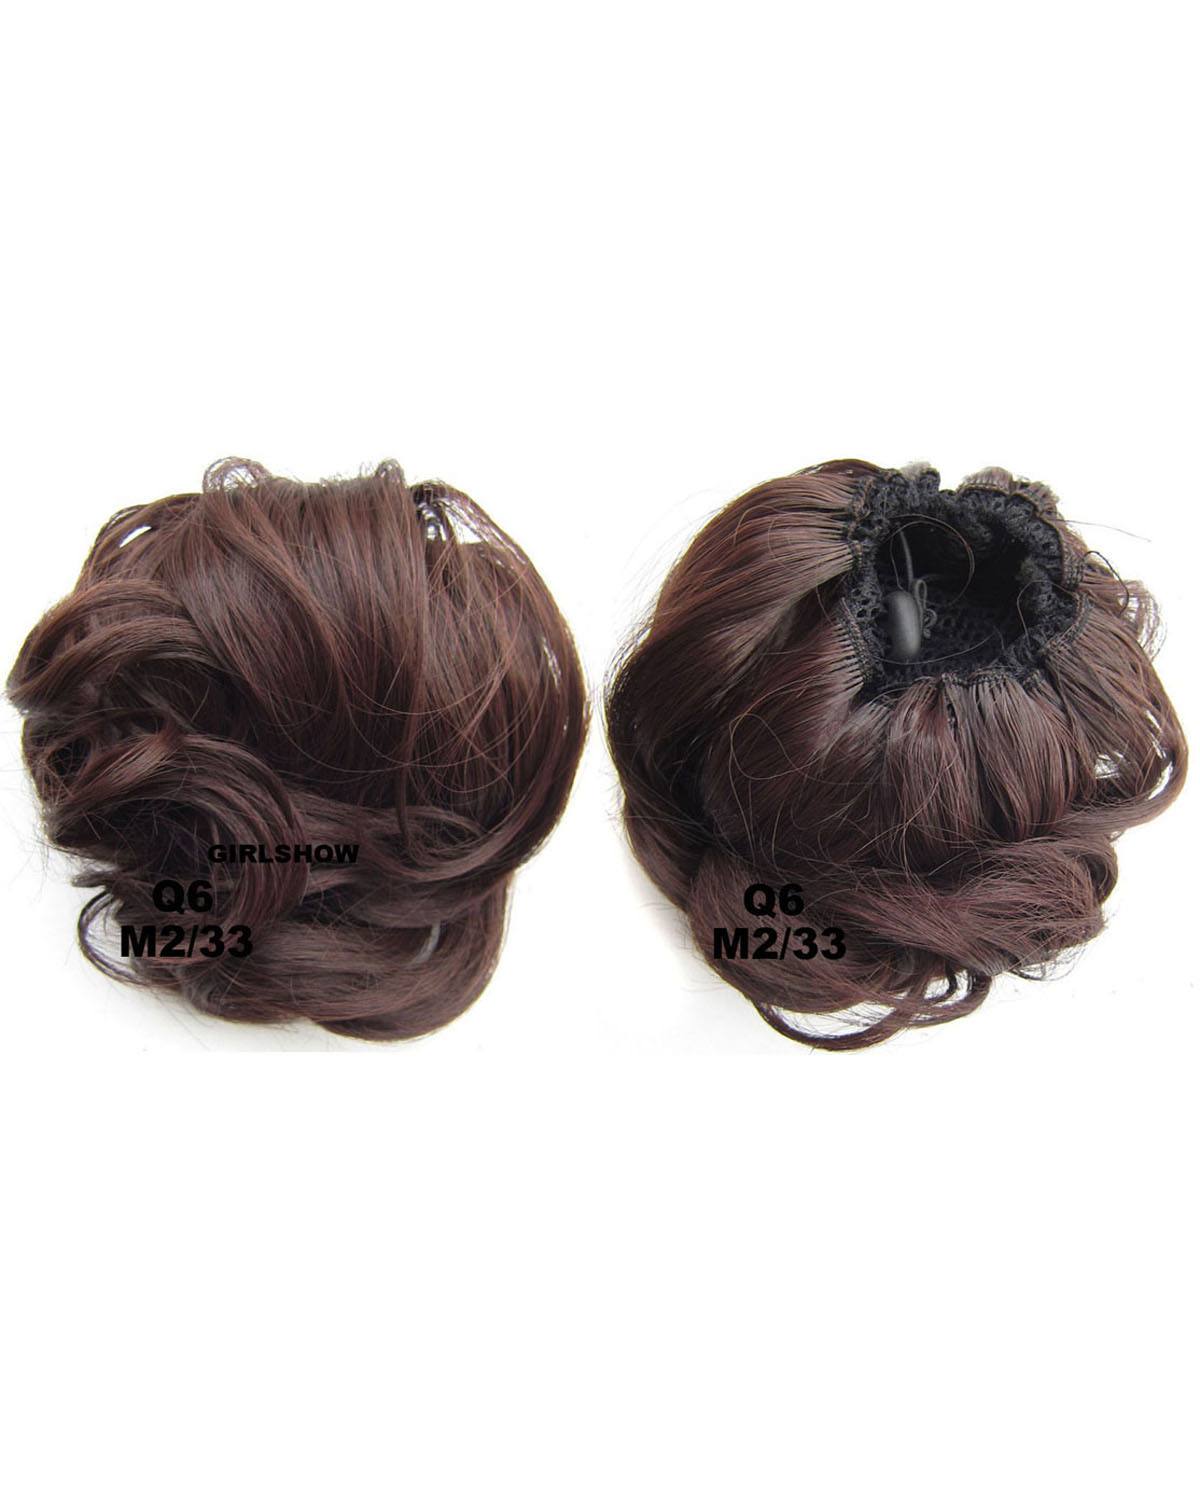 Ladies Classic Curly and Short Hair Buns Drawstring Synthetic Hair Extension Bride Scrunchies M2/33